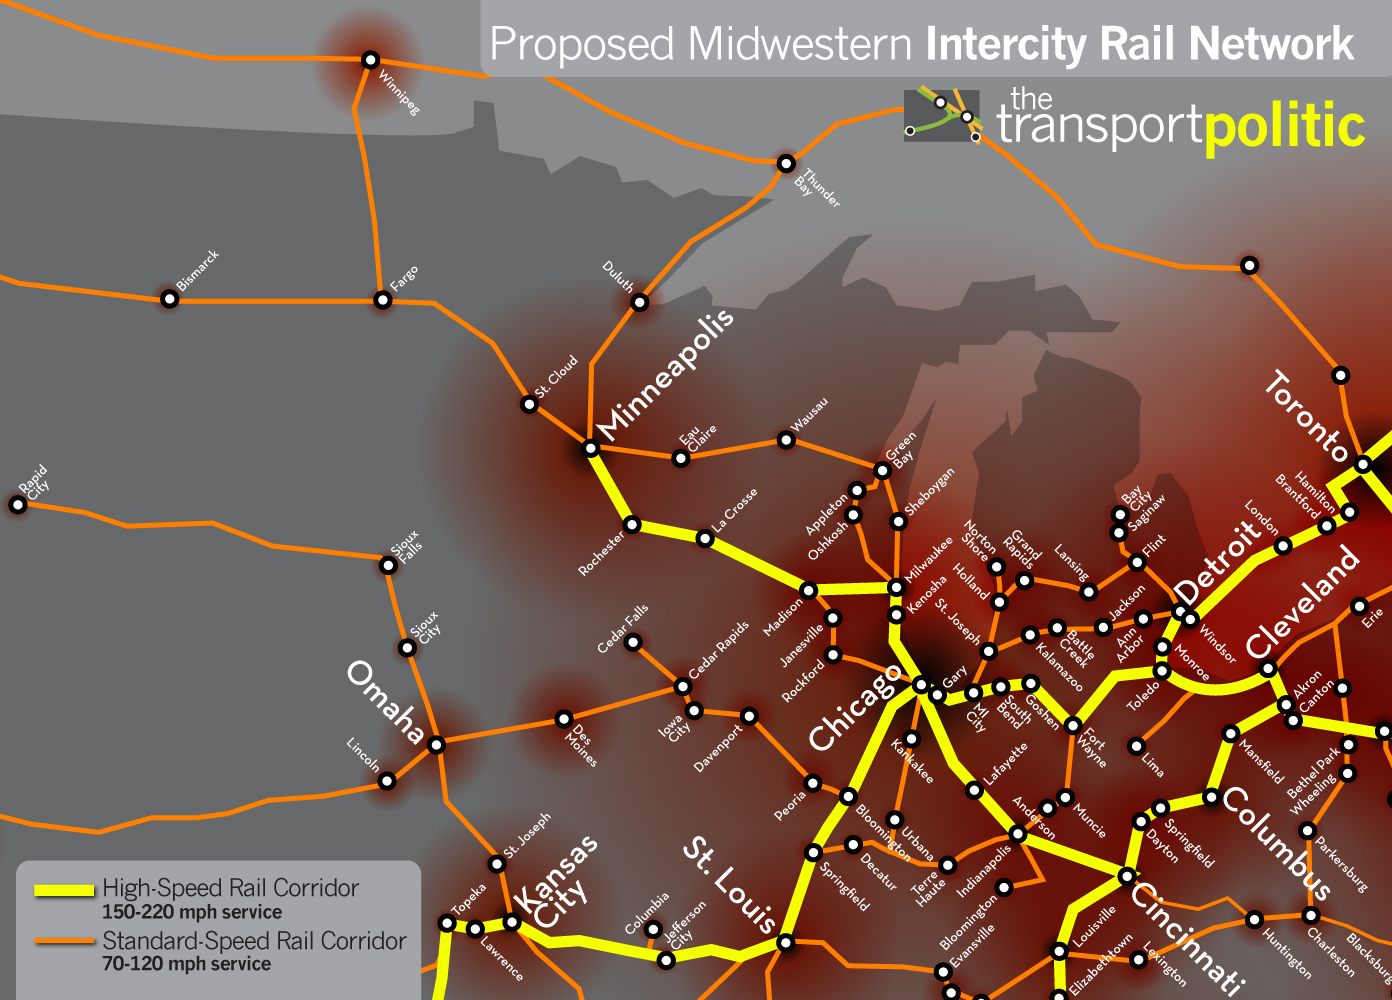 Midwest High Speed Rail Network